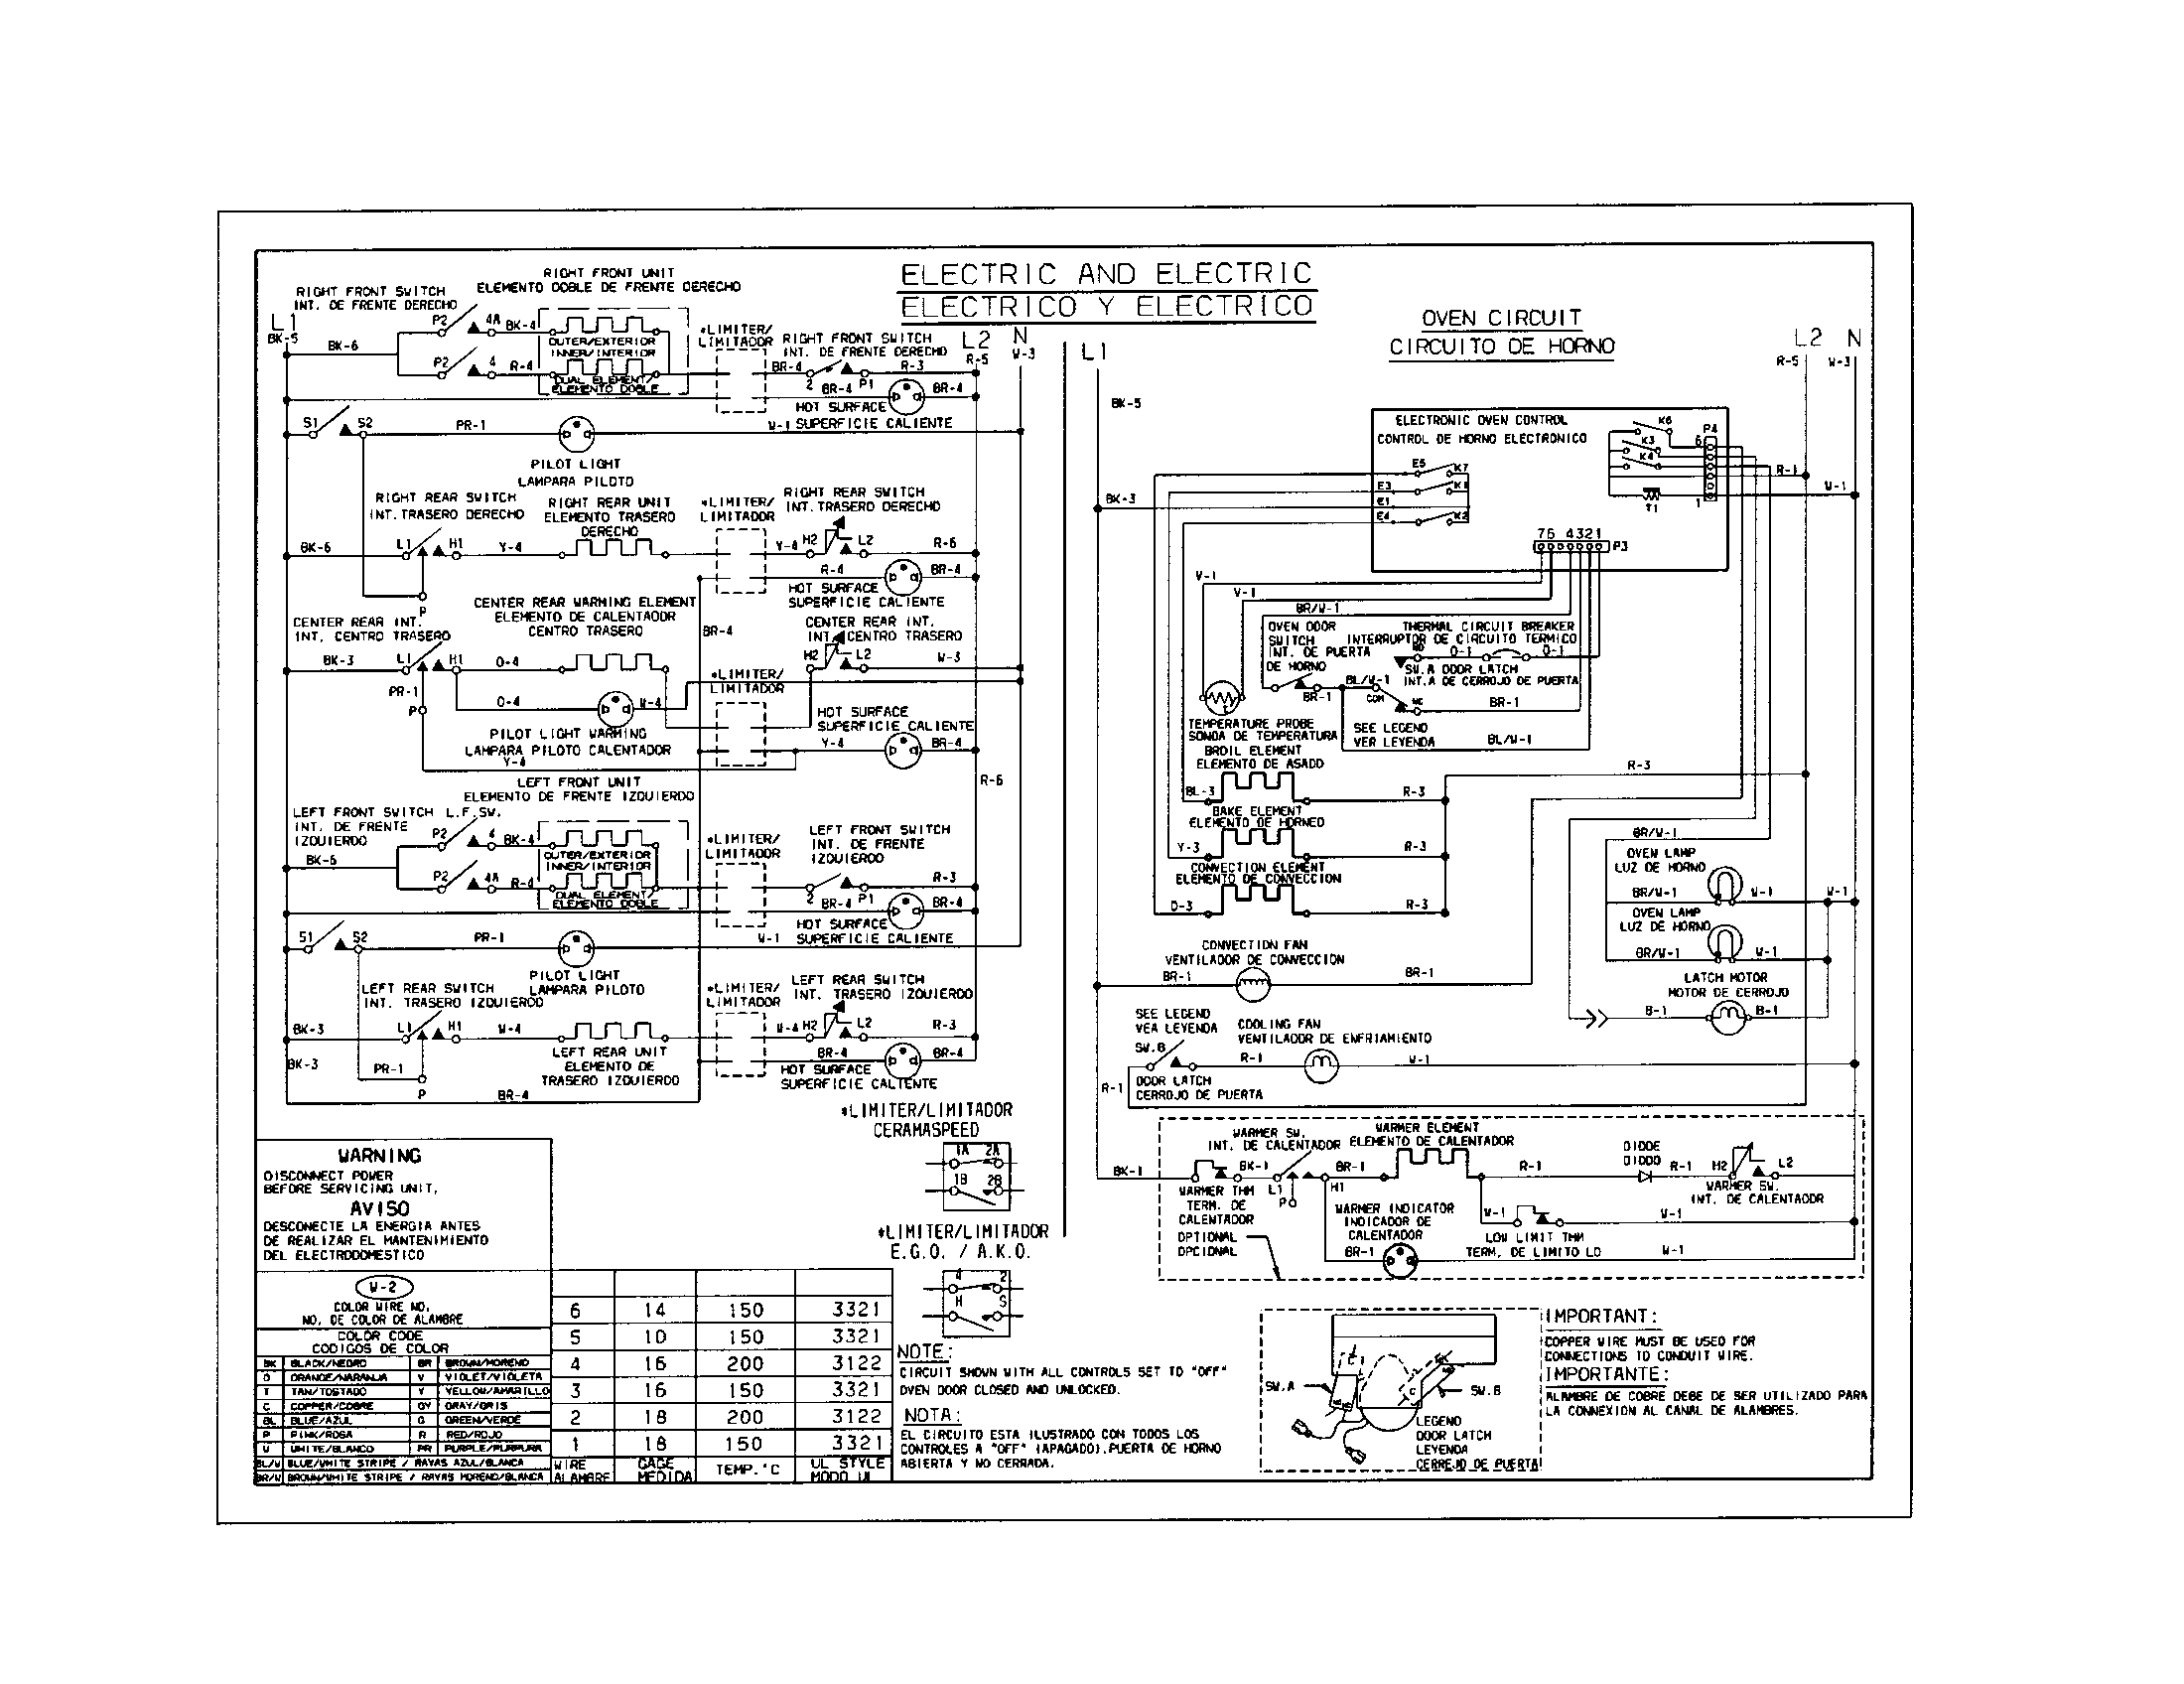 wiring diagram parts protectofier wiring diagram protectofier controls \u2022 indy500 co protectofier wiring diagram at alyssarenee.co